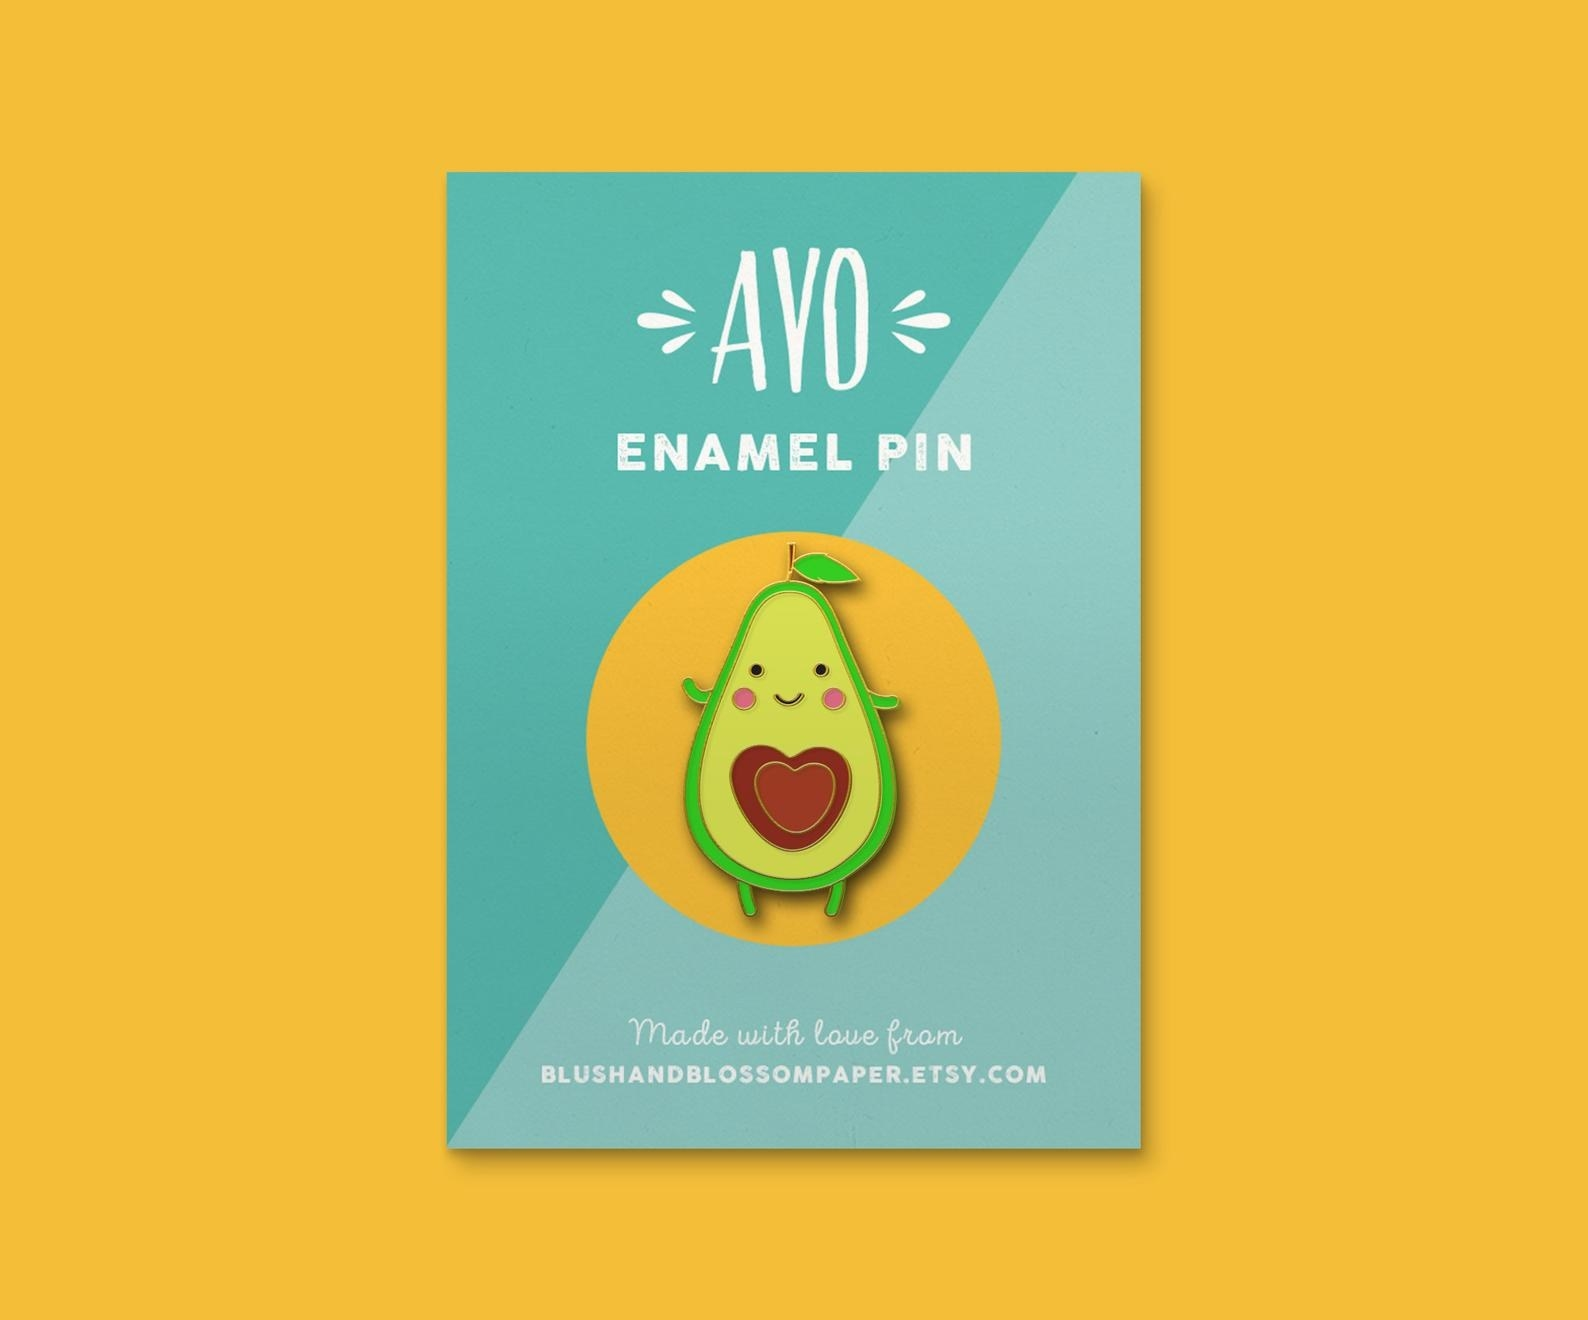 the avocado enamel pin against a yellow background